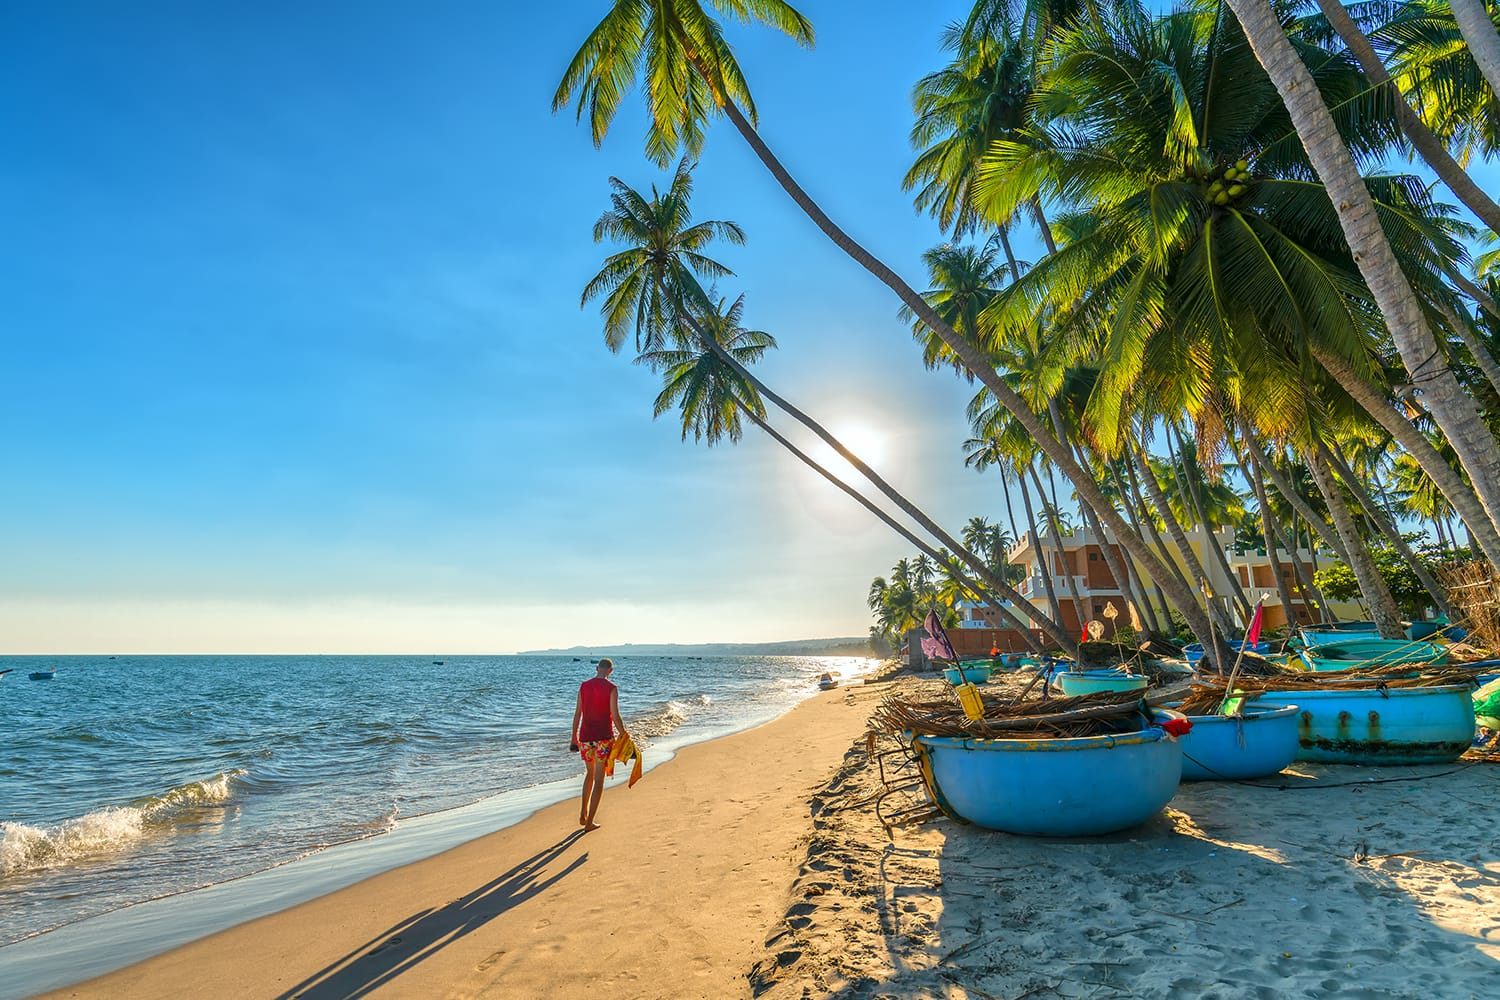 The man alone go to end of tropical beach with coconut palm trees as sun gradually create beautiful setting for weekend guests at paradise beach in Mui Ne, Vietnam